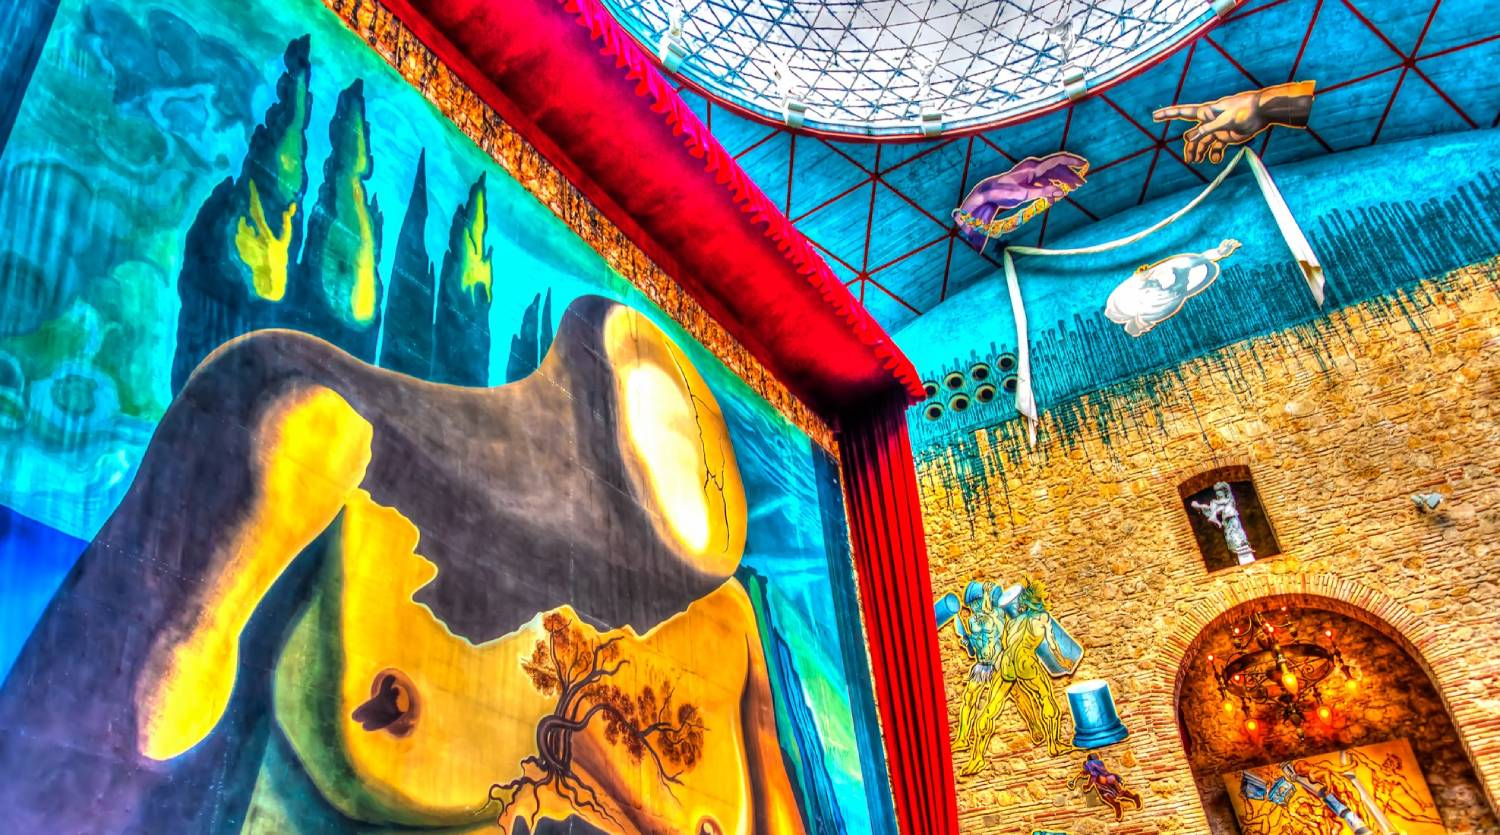 Dali Theatre Museum - Things To Do In Barcelona